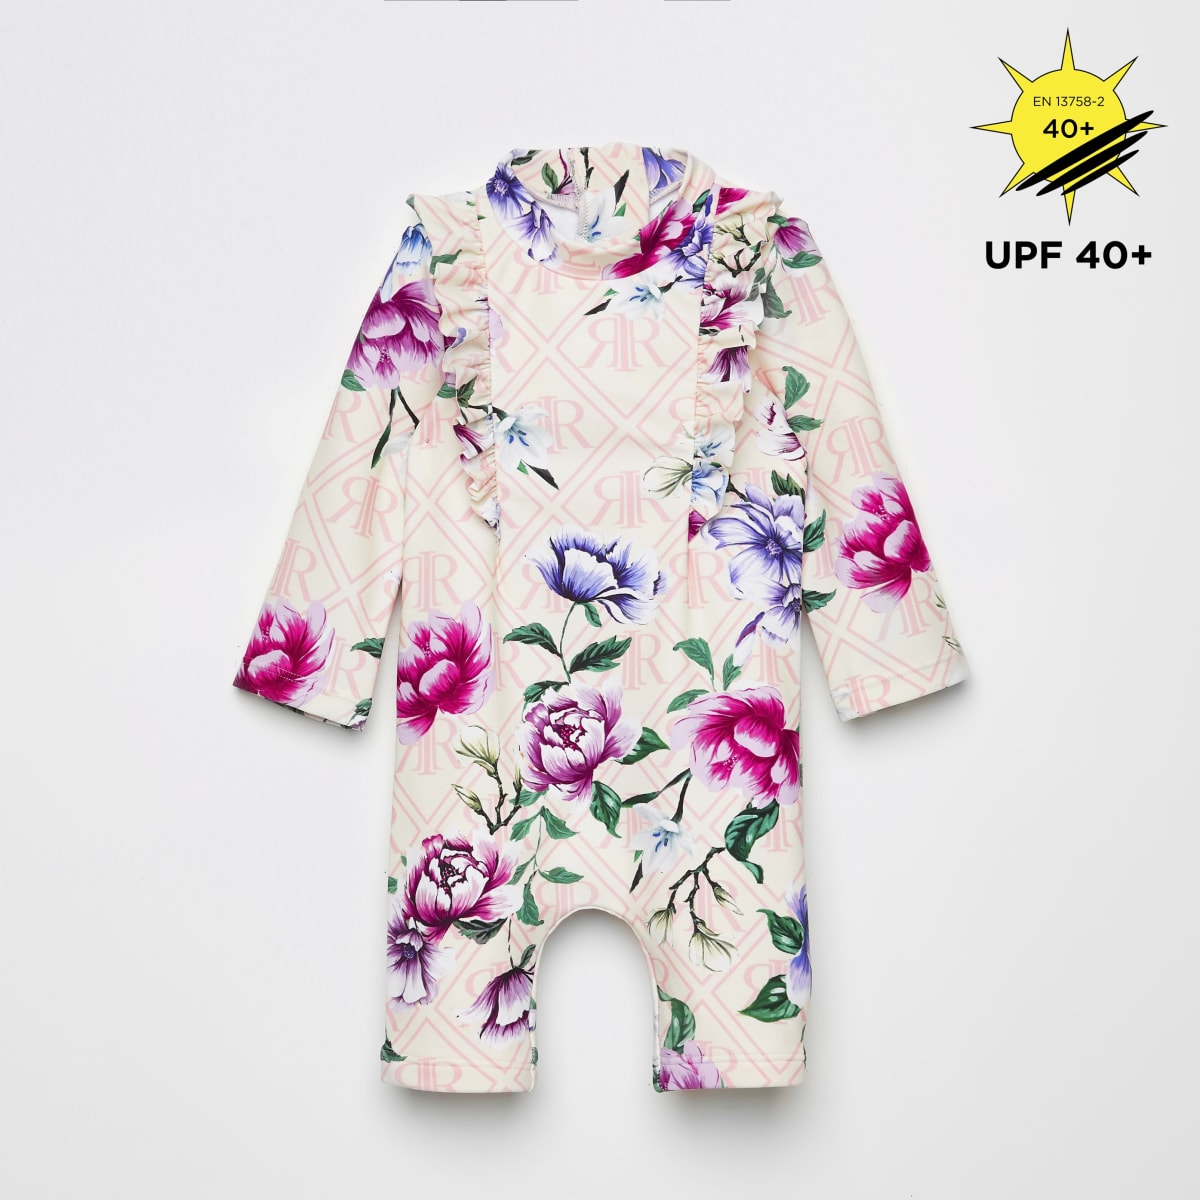 Baby pink floral sunsafe all in one swimsuit